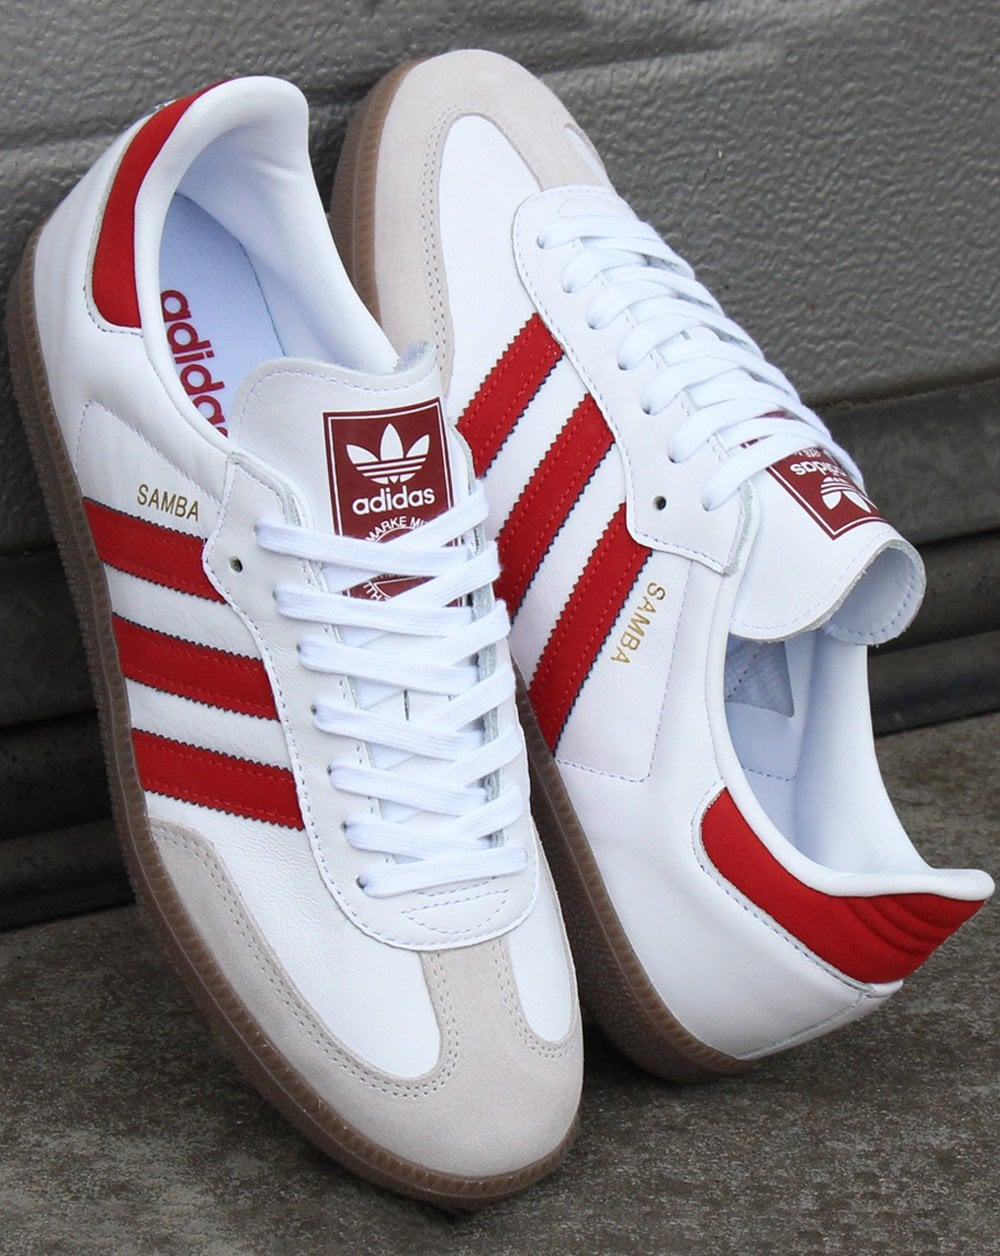 adidas Trainers Adidas Samba OG Trainers White Red 5febc569a